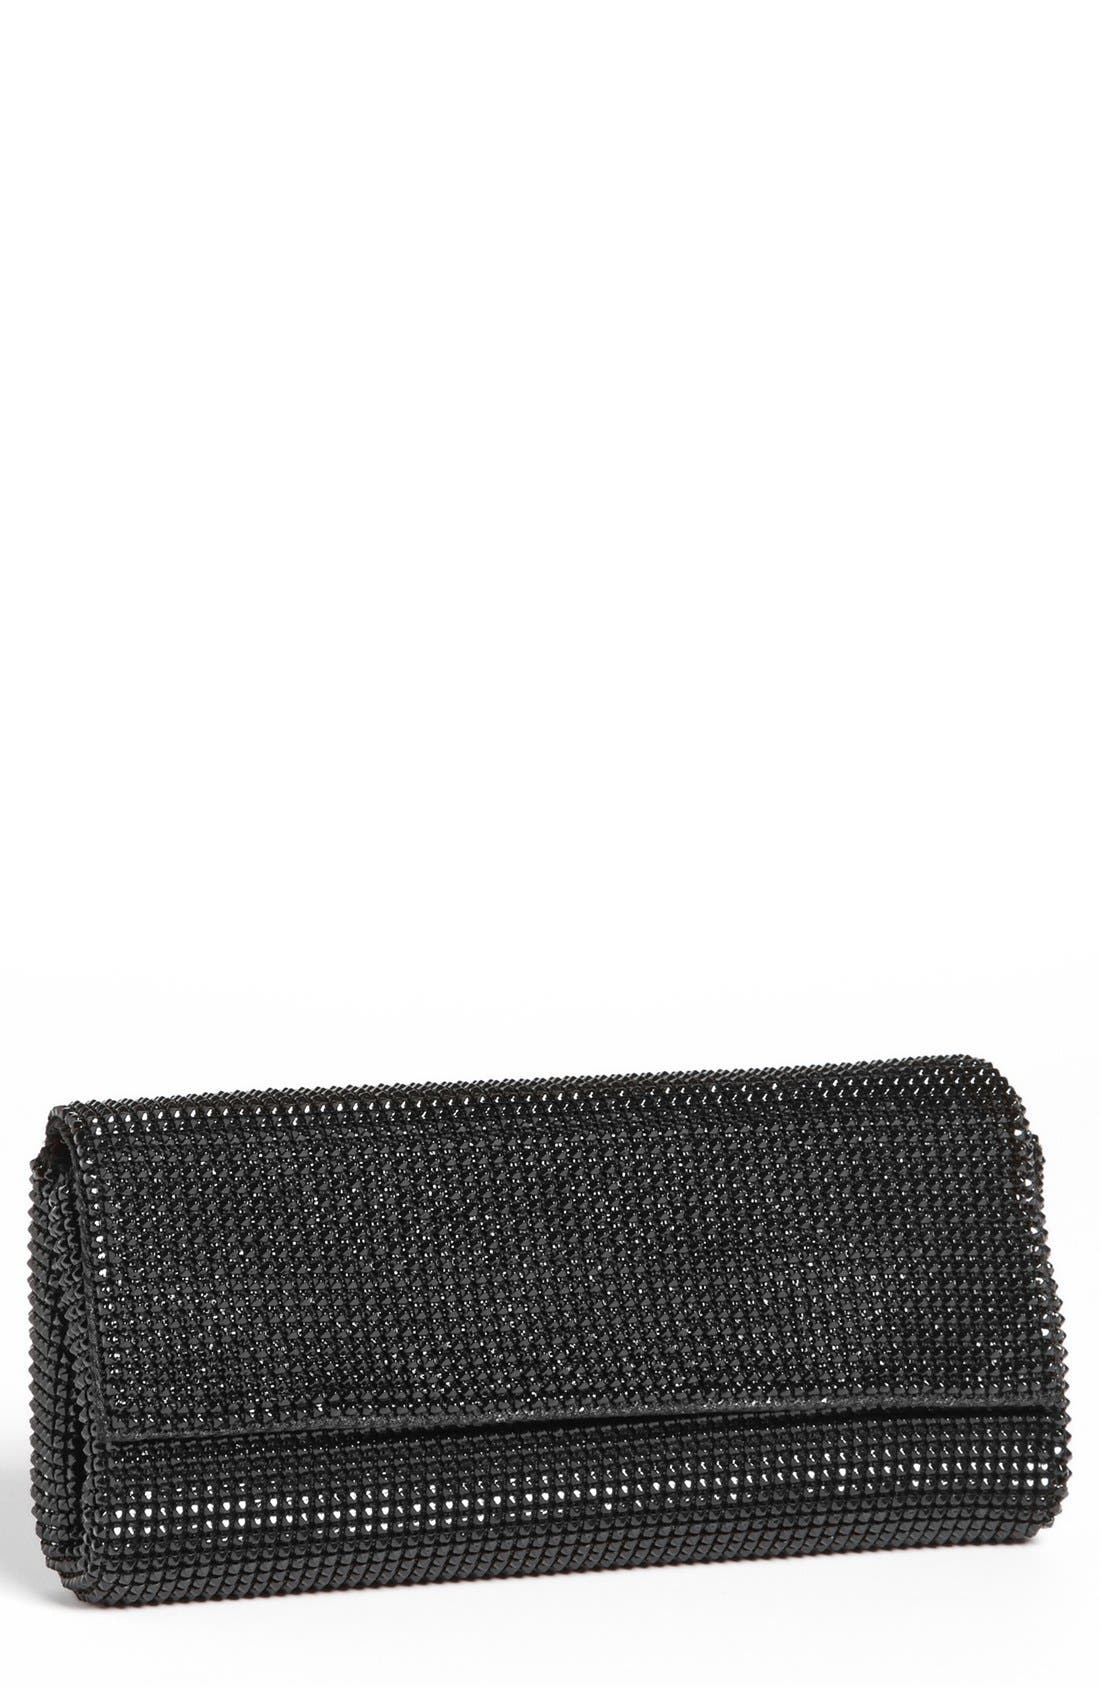 'Pyramid' Mesh Clutch,                         Main,                         color, BLACK